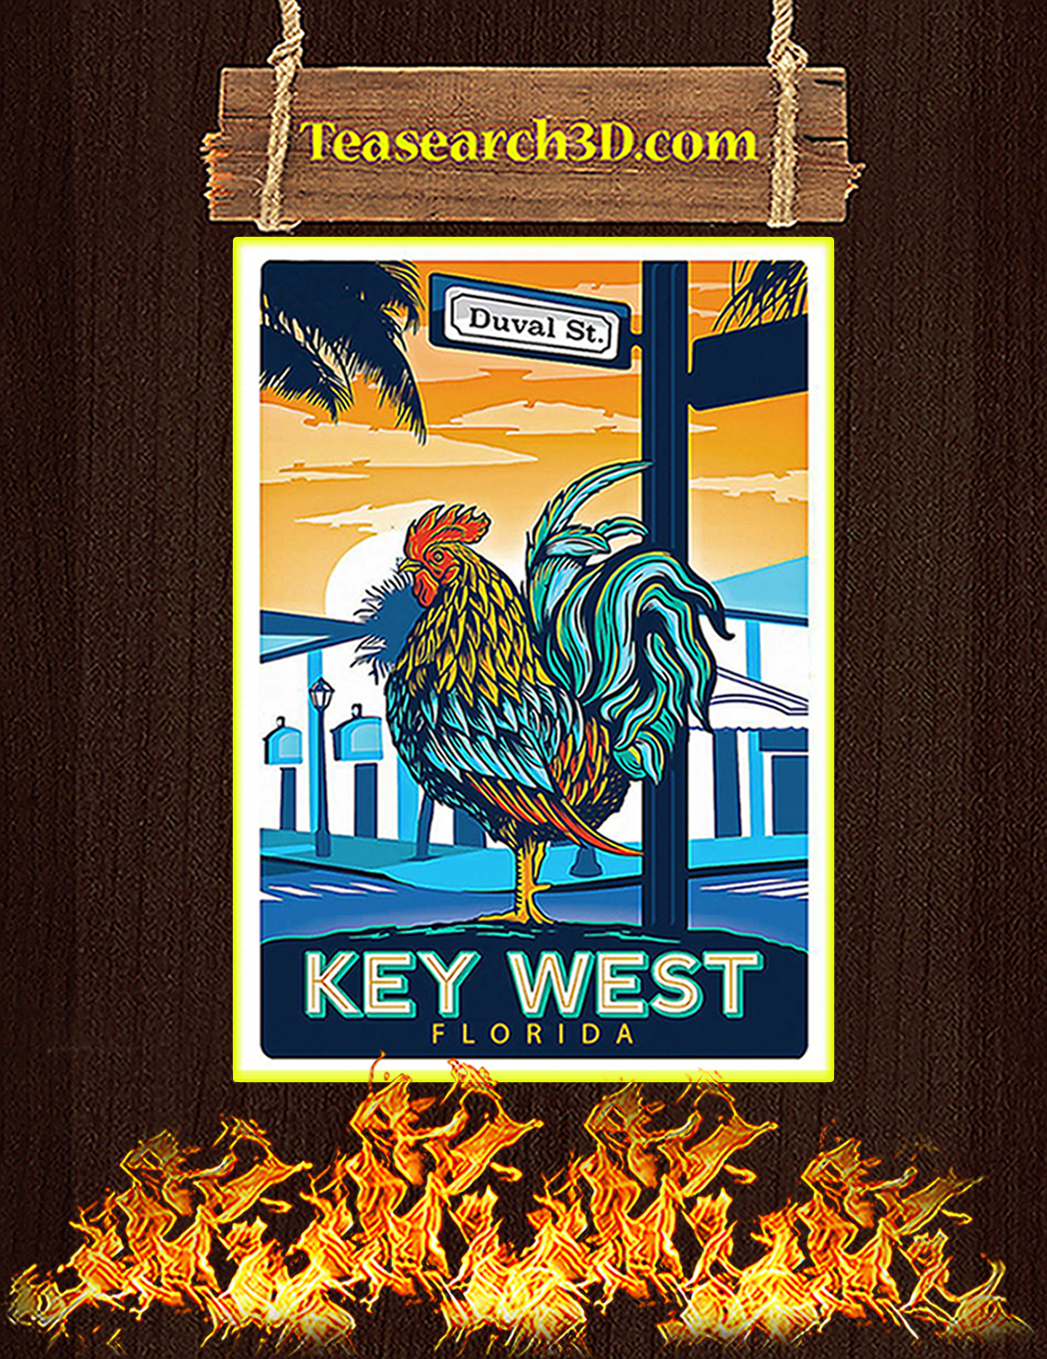 Chicken key west florida duval street poster A1